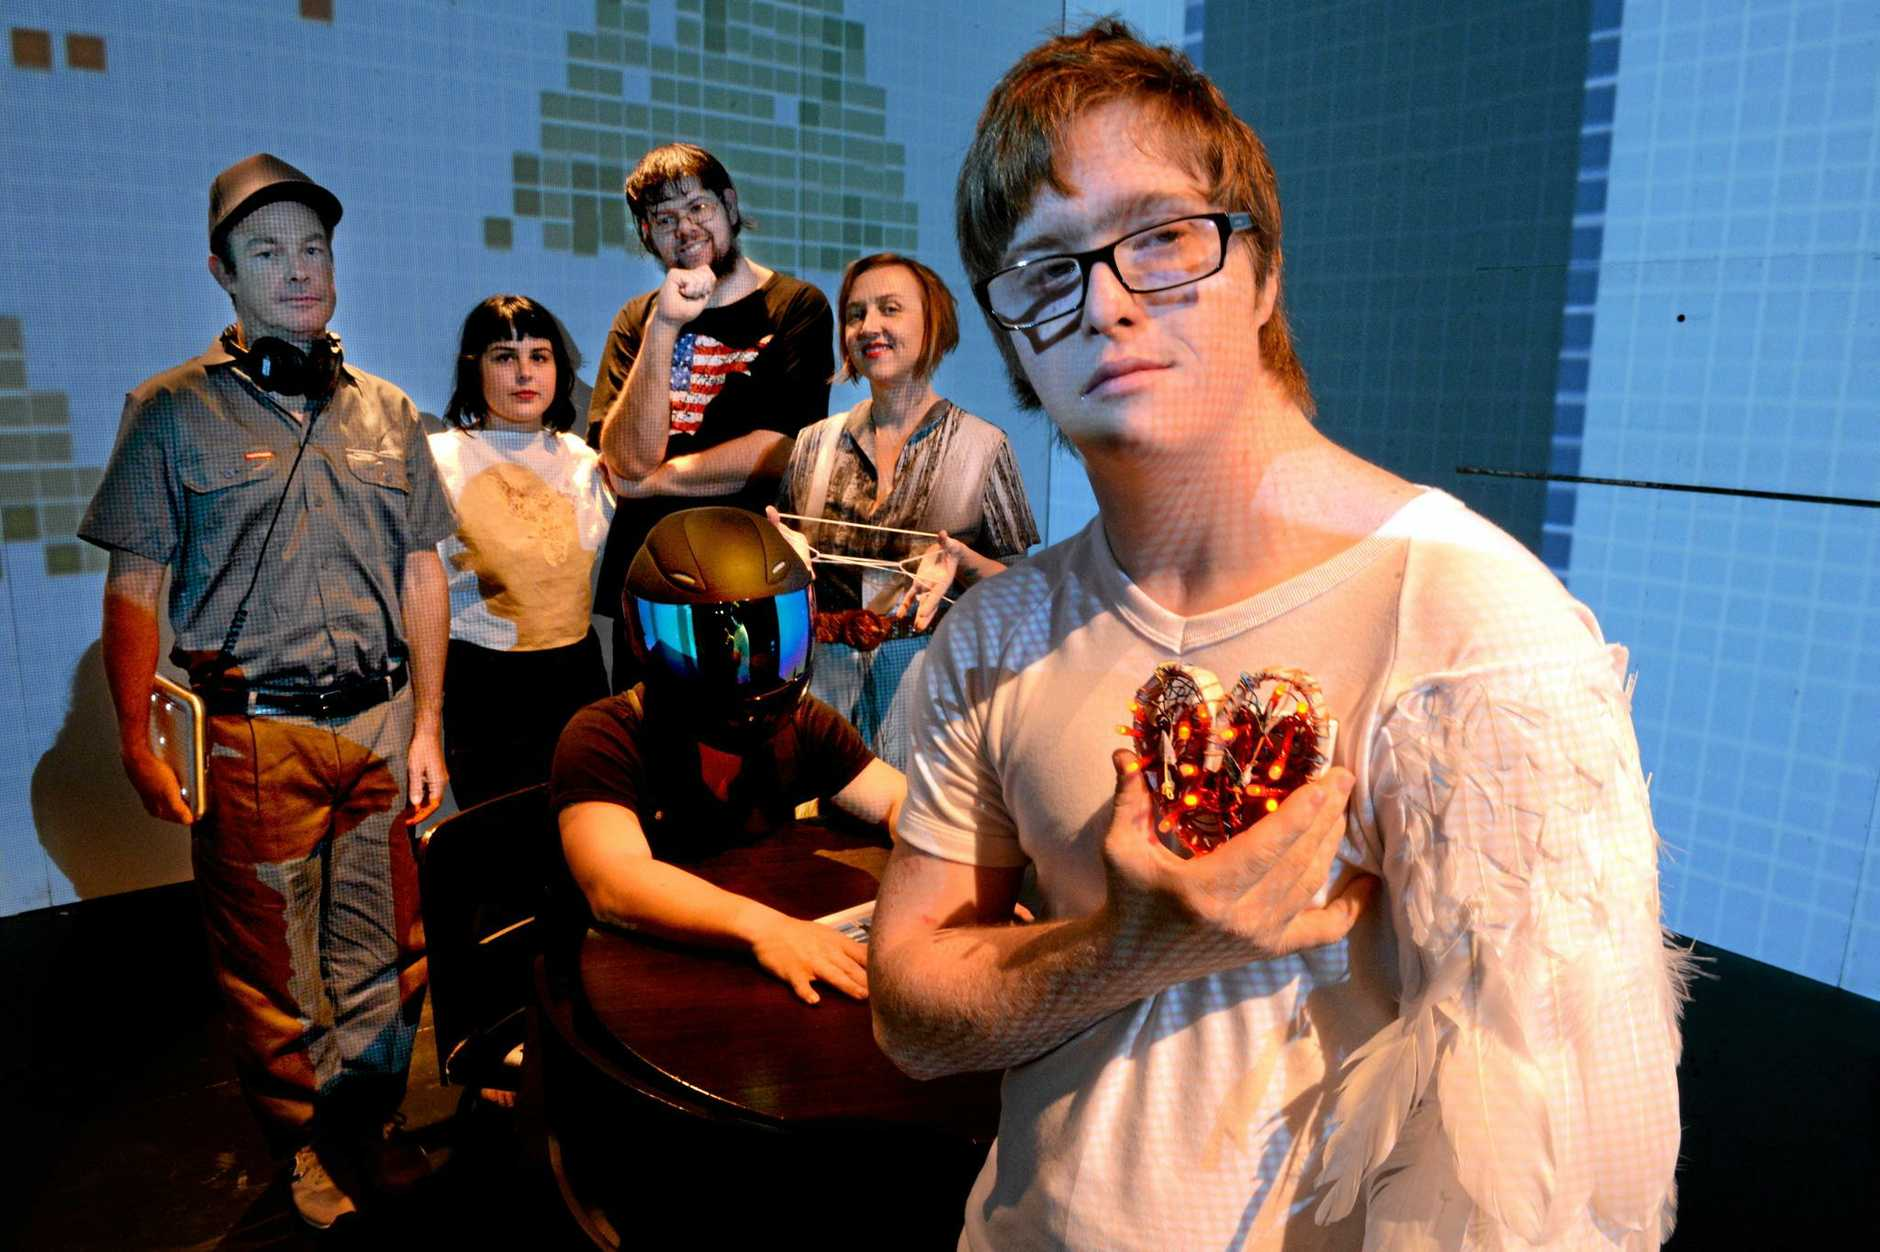 Performers in the NORPA co-production My Radio Heart, from left, Randolf Reimann, Phoebe Rose, Mathew Daymond, Claudie Frock, Zac Mifsud (sitting), and Lydian Dunbar. Photo Cathy Adams / The Northern Star